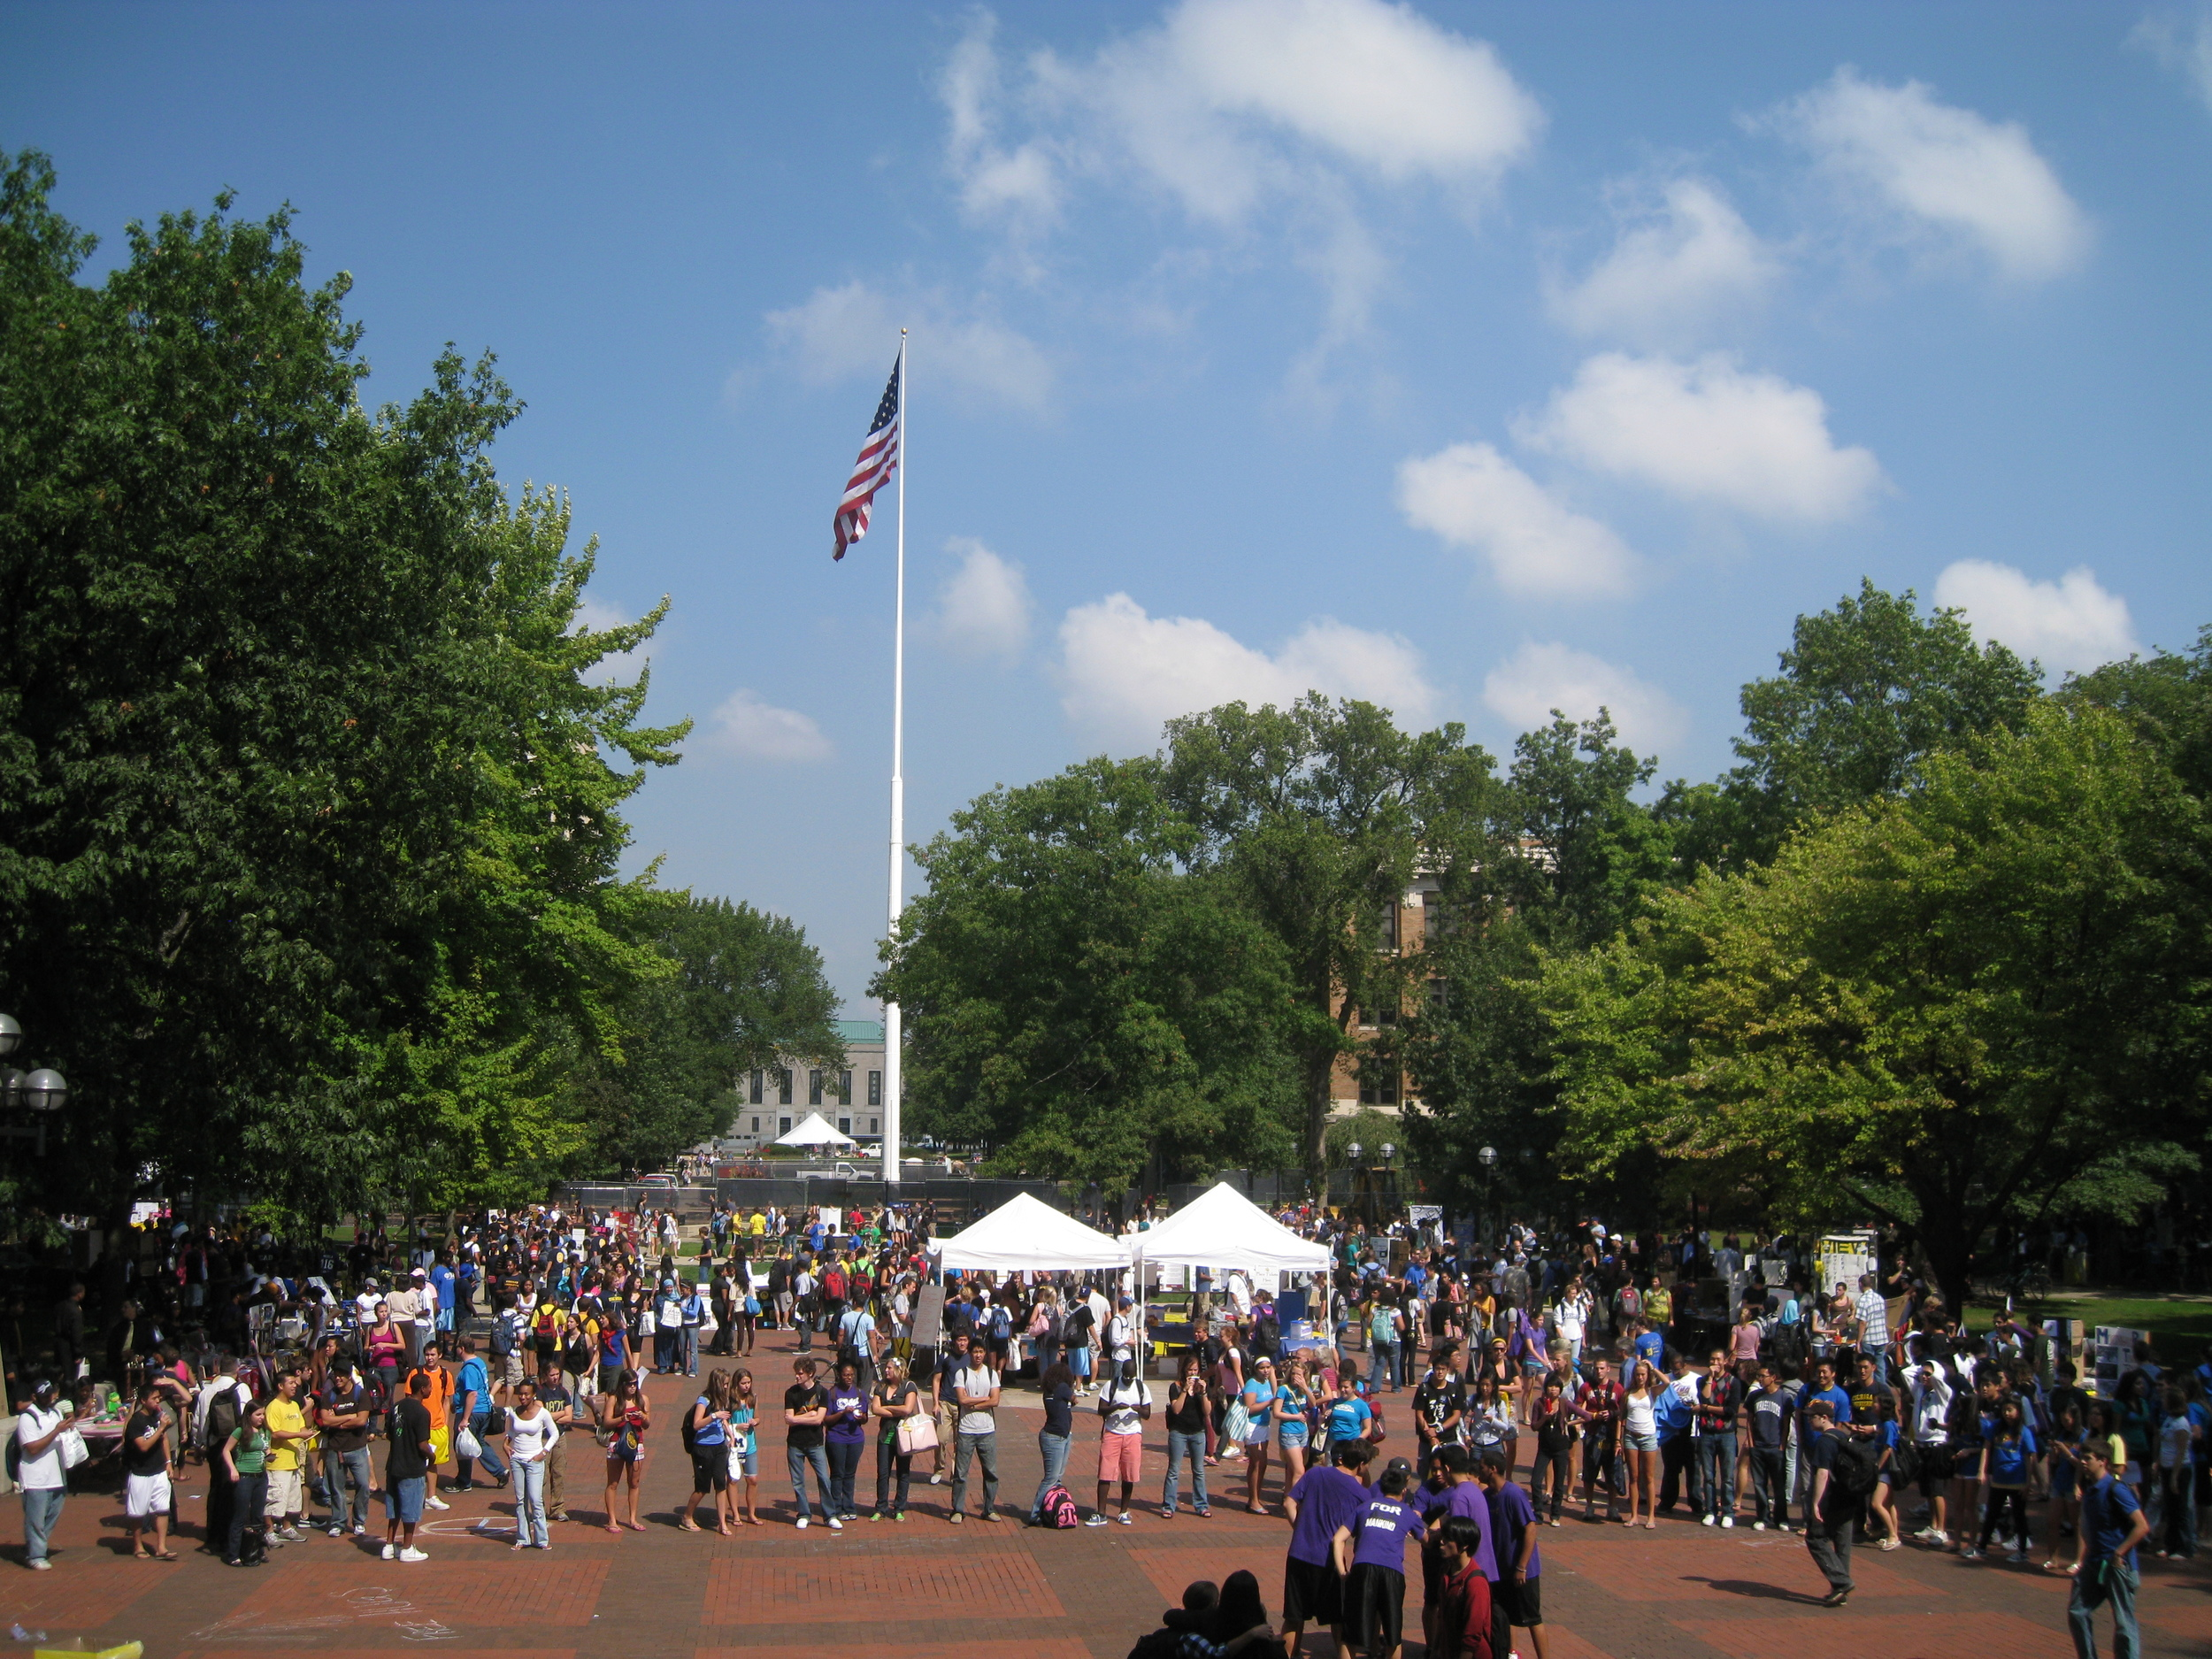 The University of Michigan campus. Credit: Andrew Horne via Wikimedia Commons.